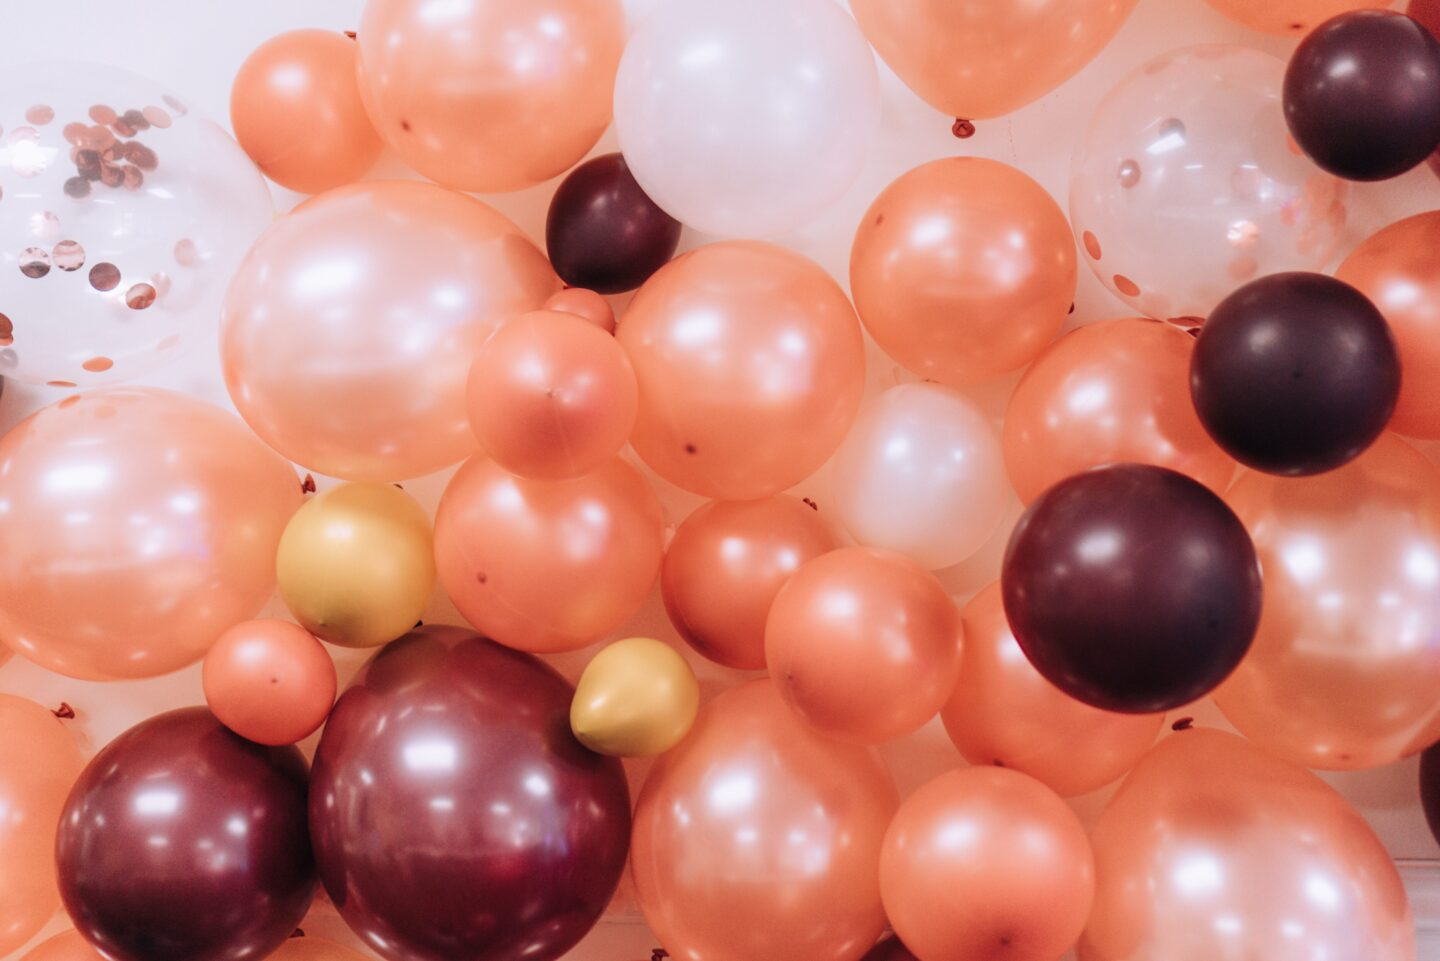 Birthday Party Balloons are a cheap and fun way to decorate a party